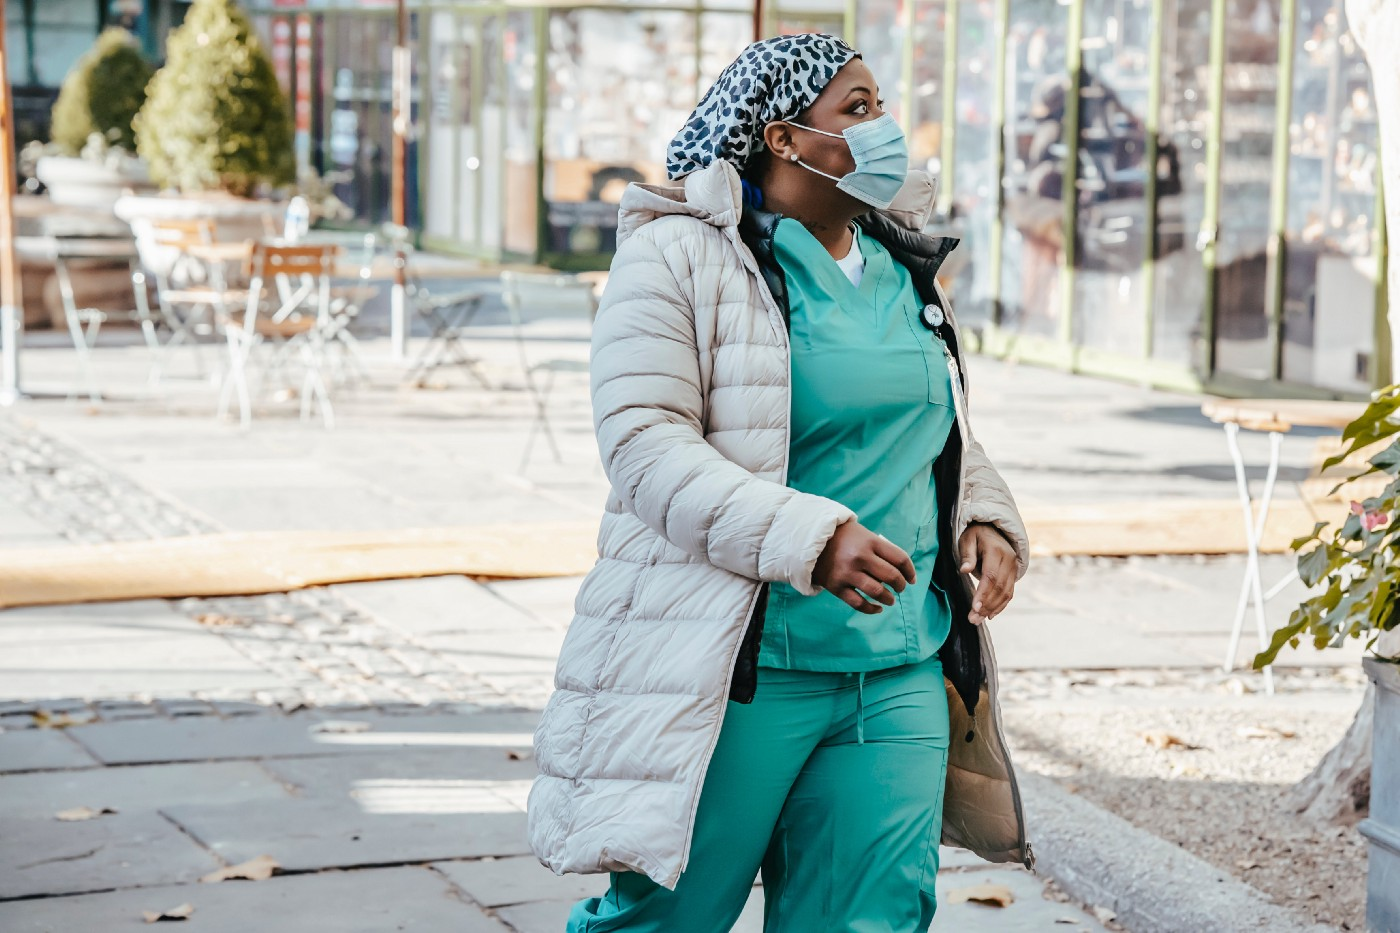 Woman in scrubs and mask walks through hospital courtyard